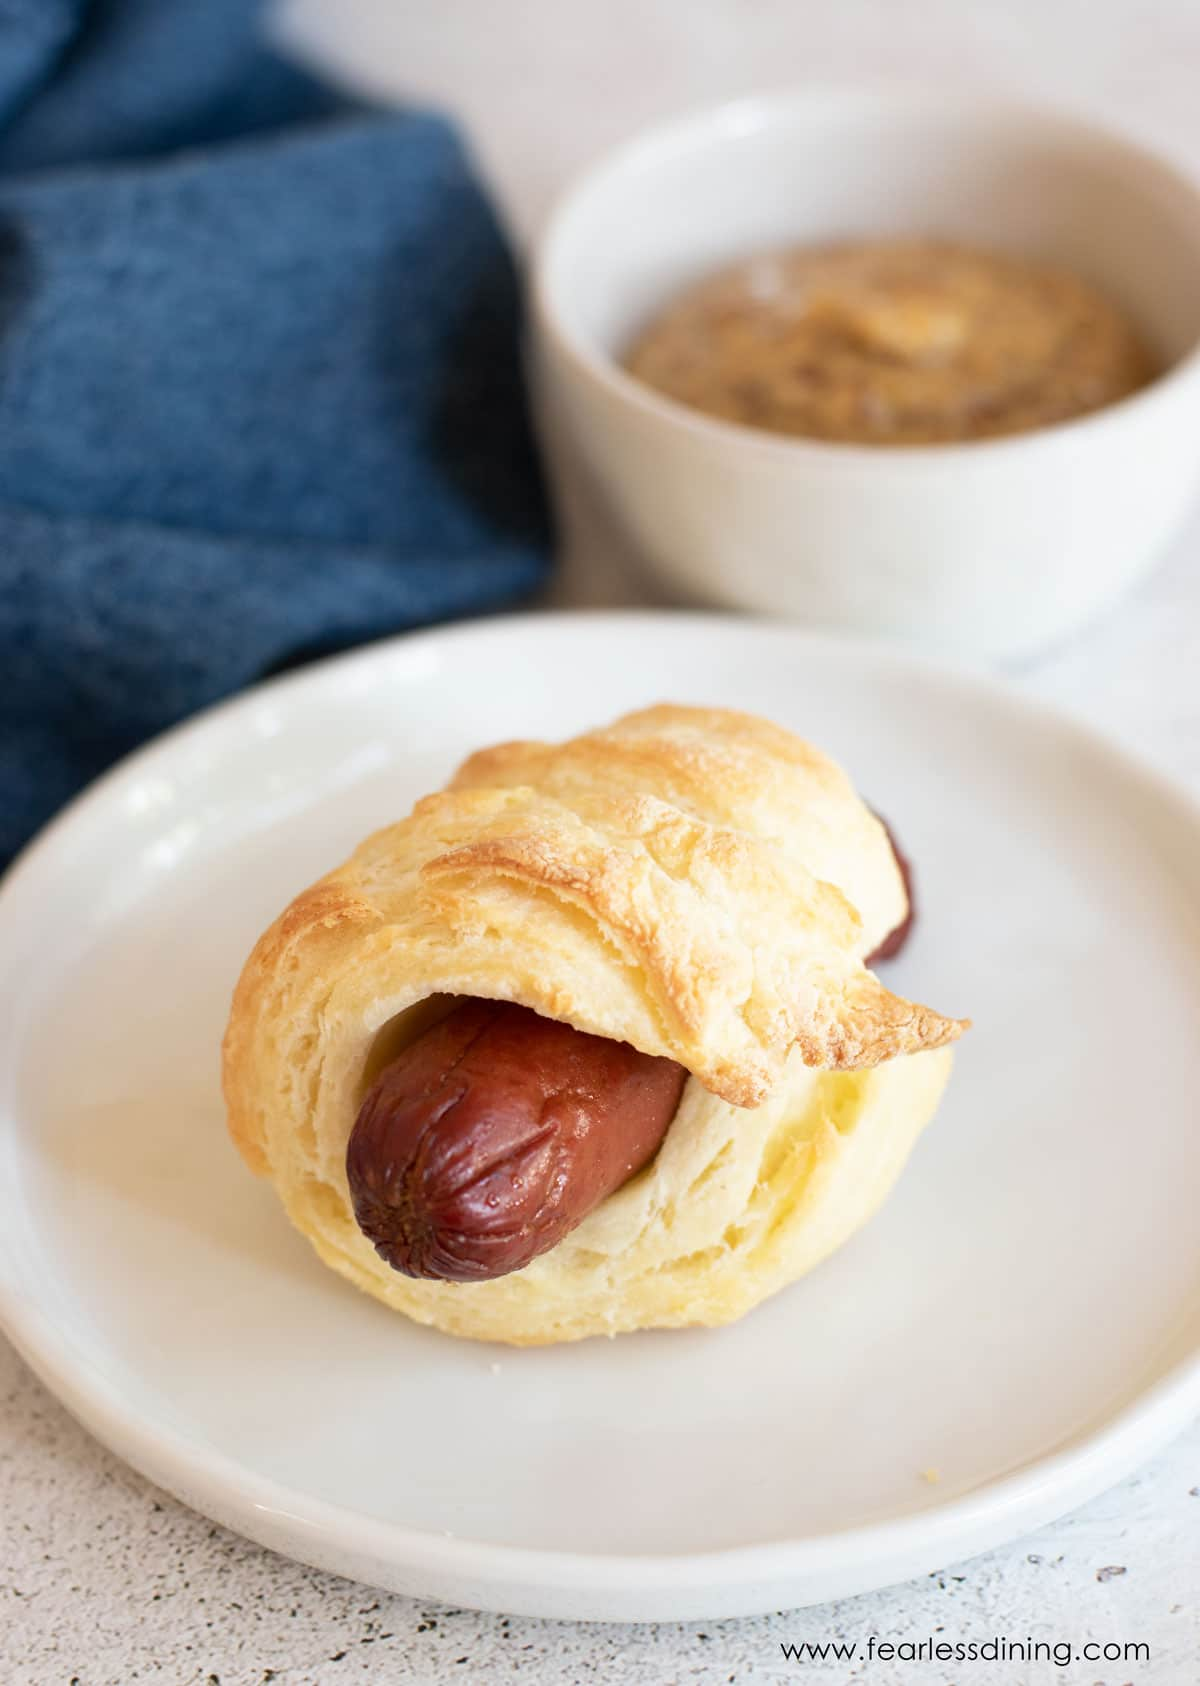 a gluten free pig in a blanket on a plate